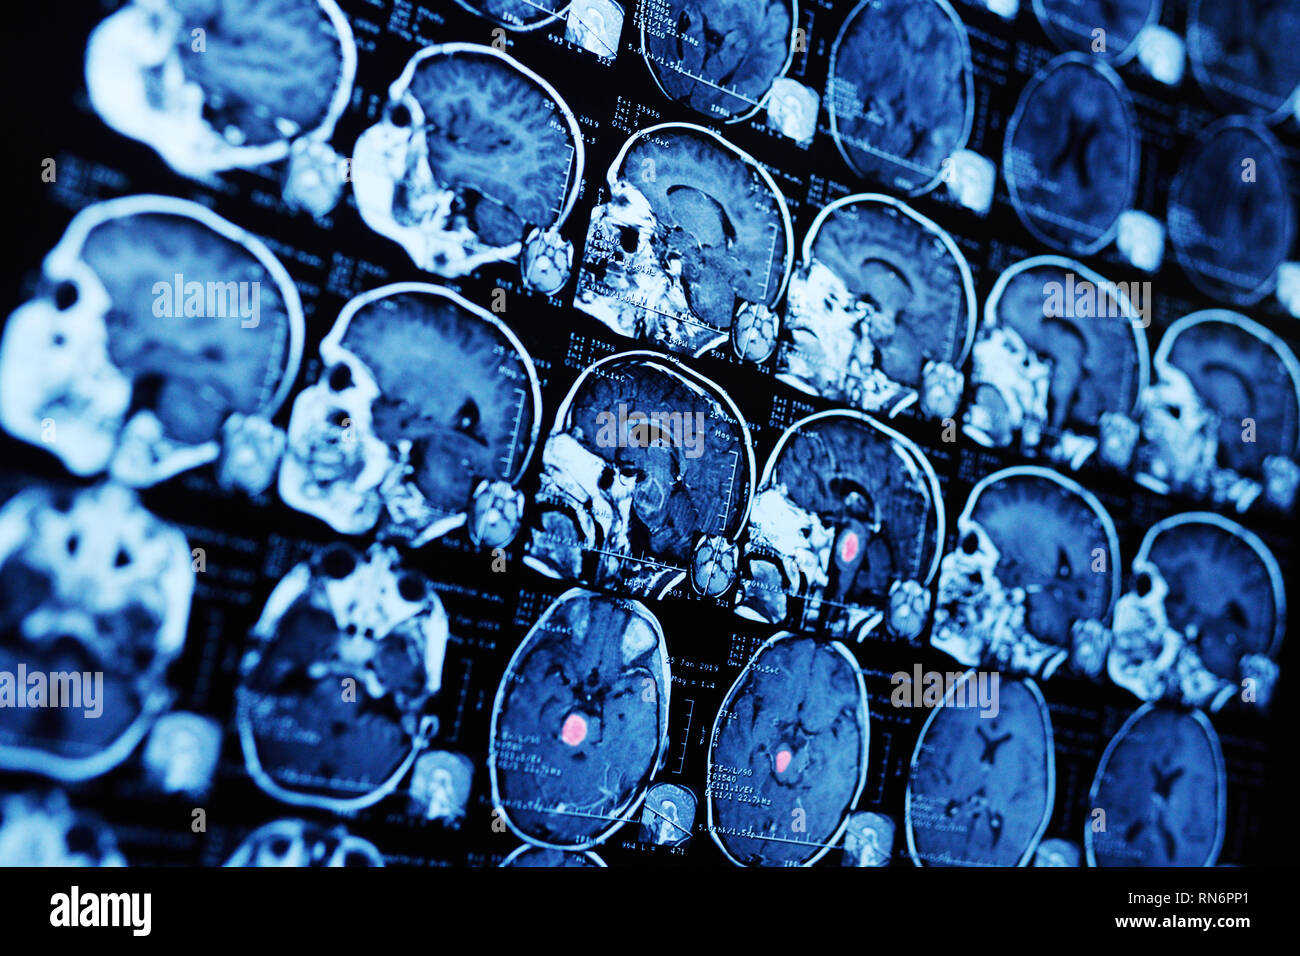 MRI magnetic resonance image scan of a patient with a tumor in the brain stem. - Stock Image